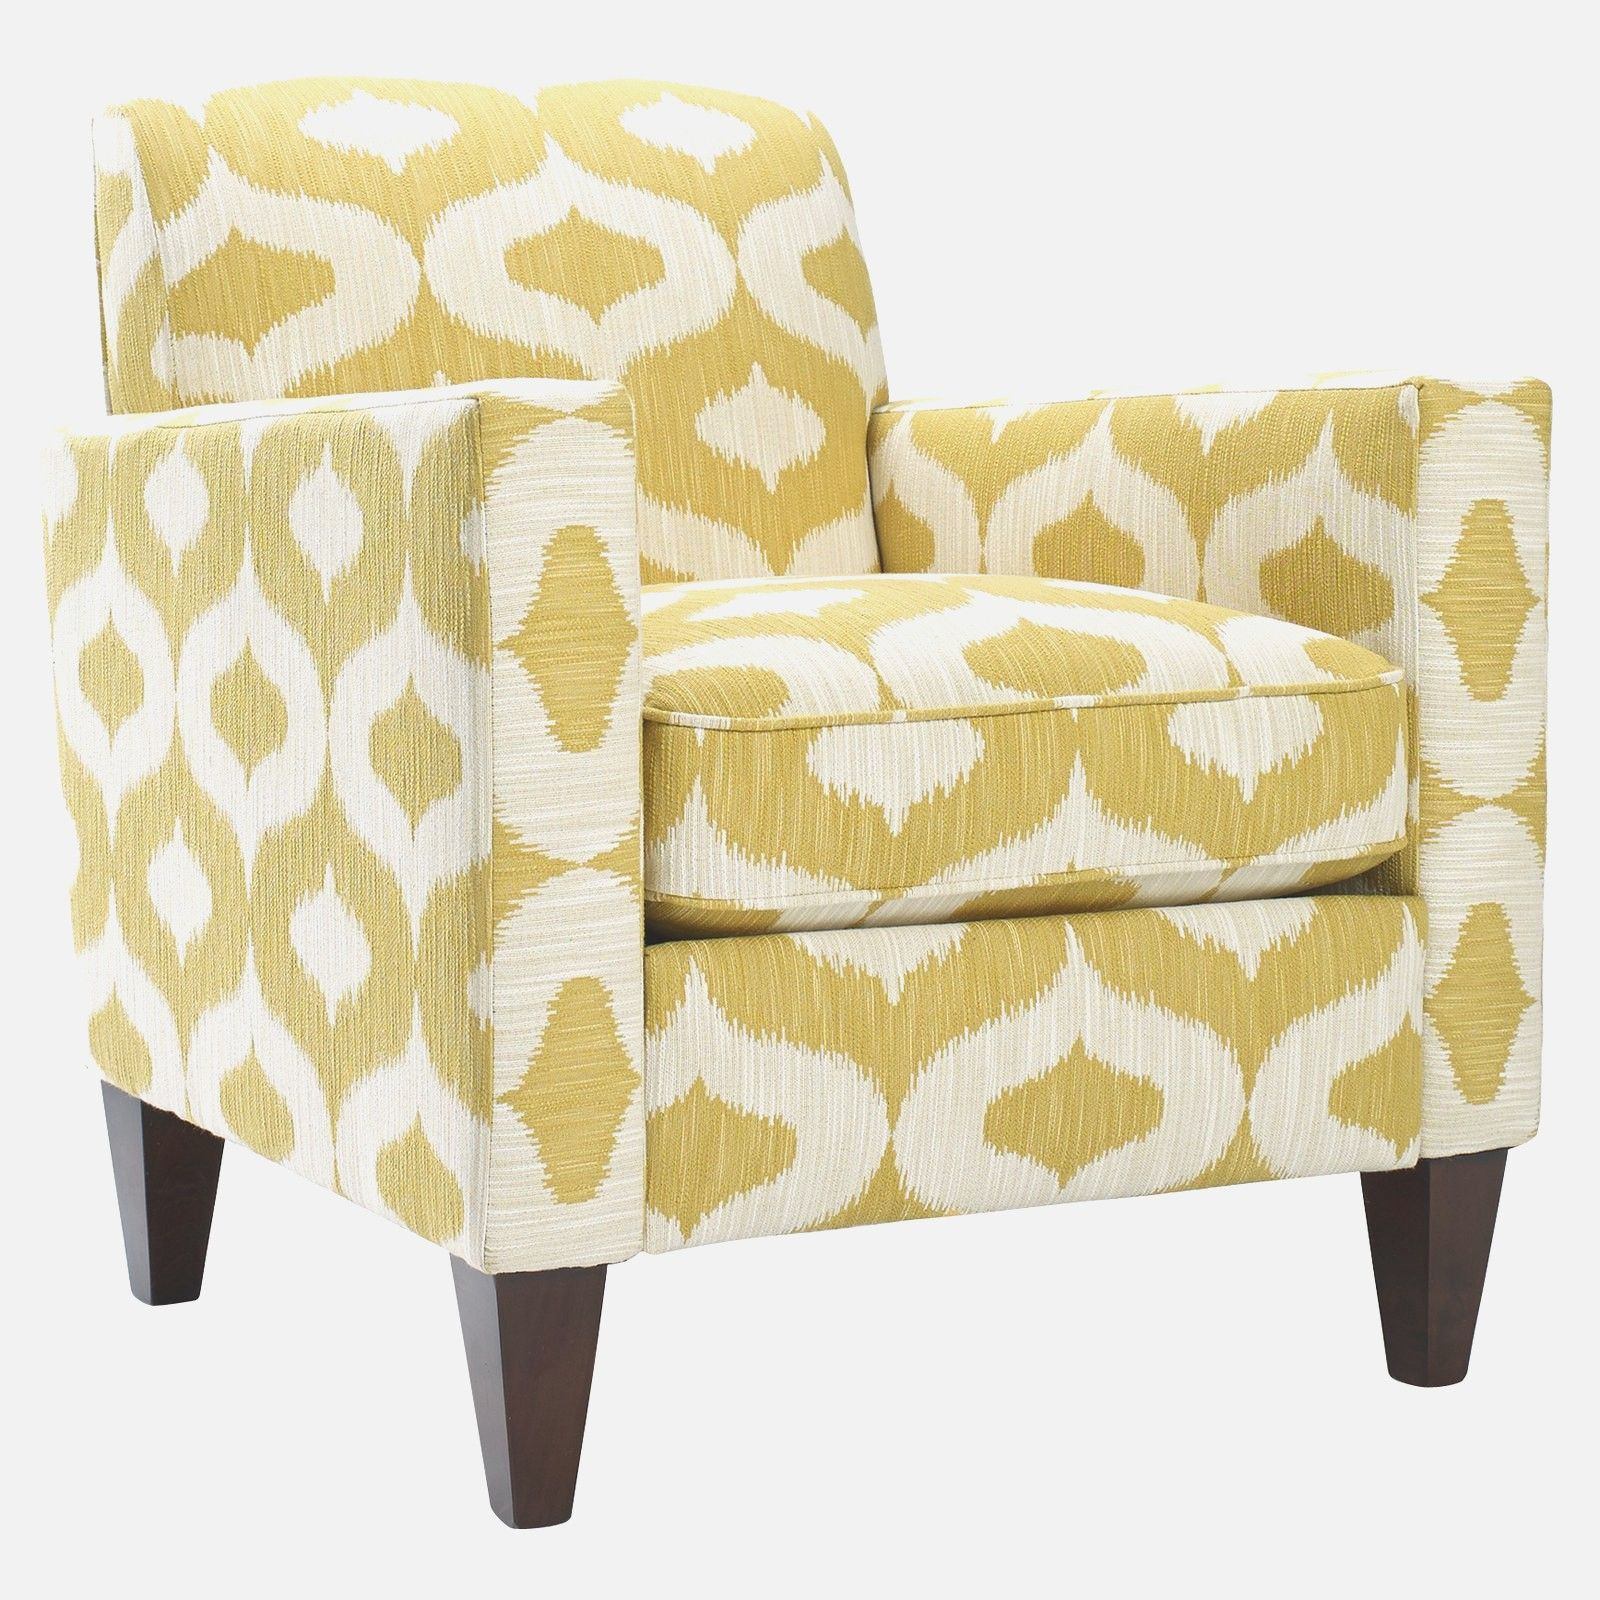 Accent Chairs for Living Room Clearance - 99 cent store ...